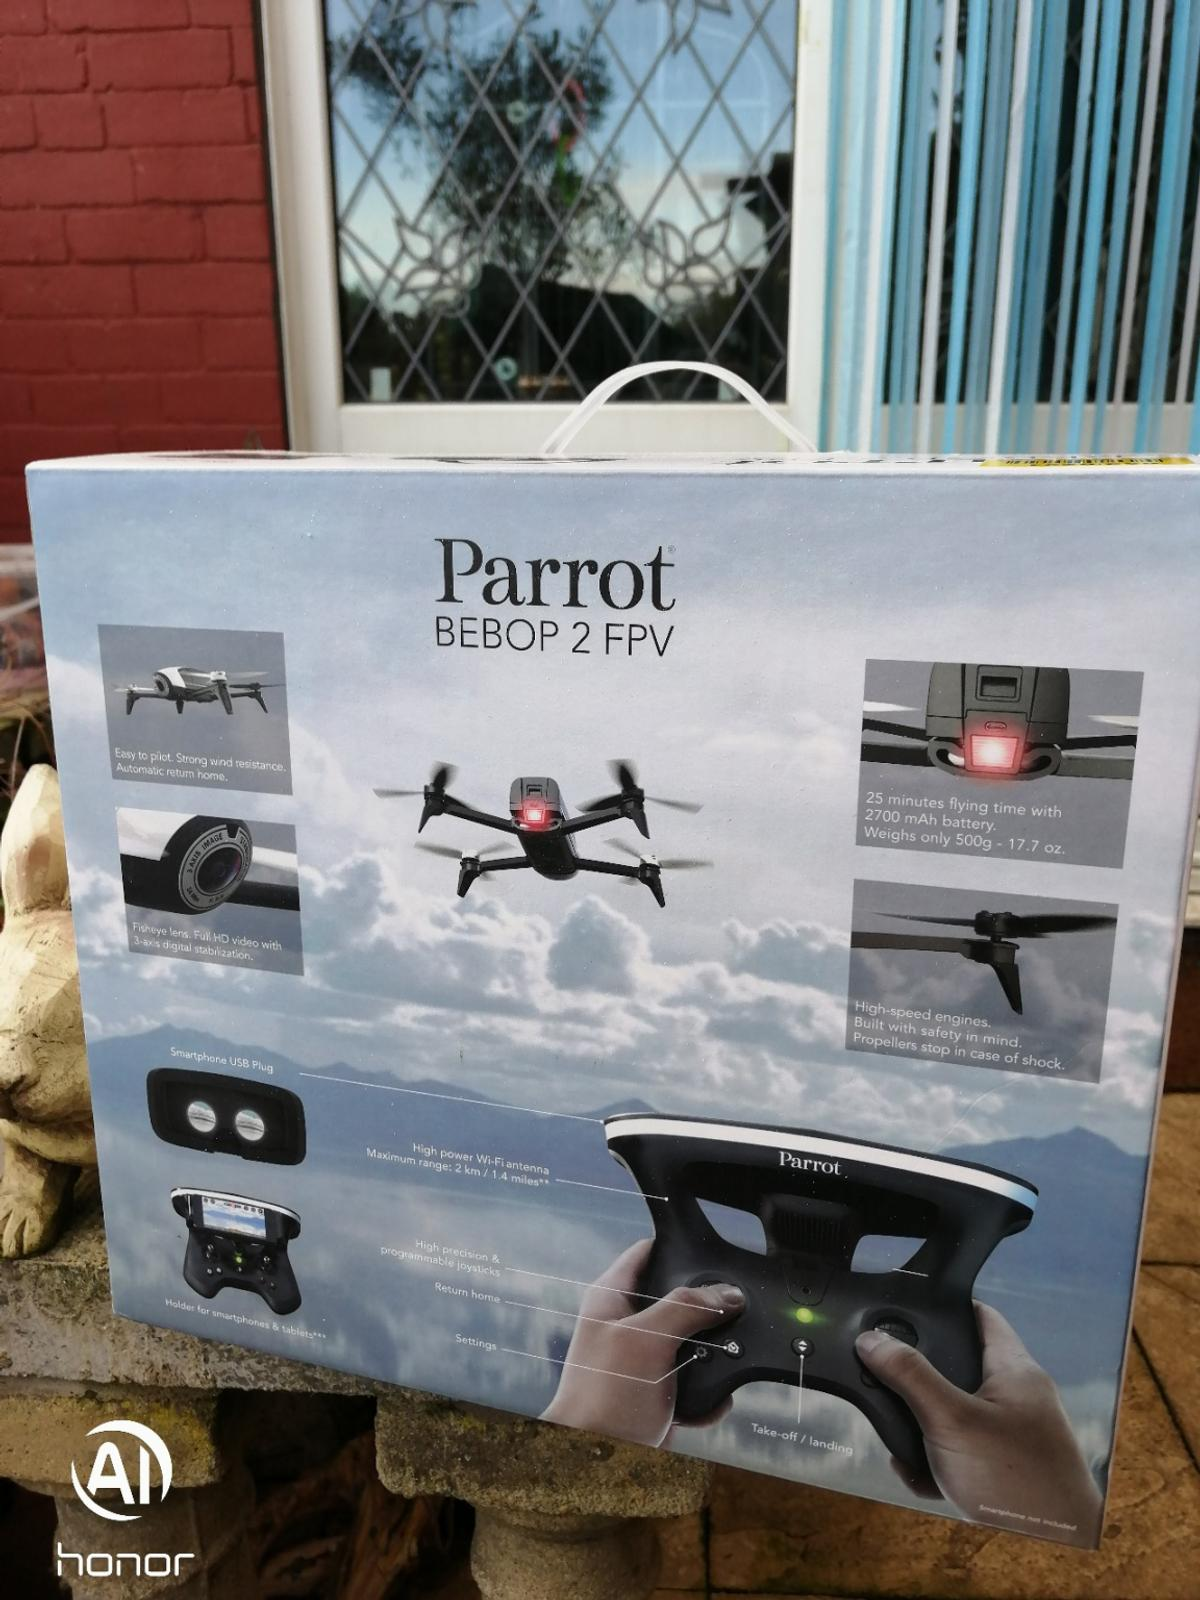 Parrot bebop 2 FPV drone in WF9 Wakefield for £300 00 for